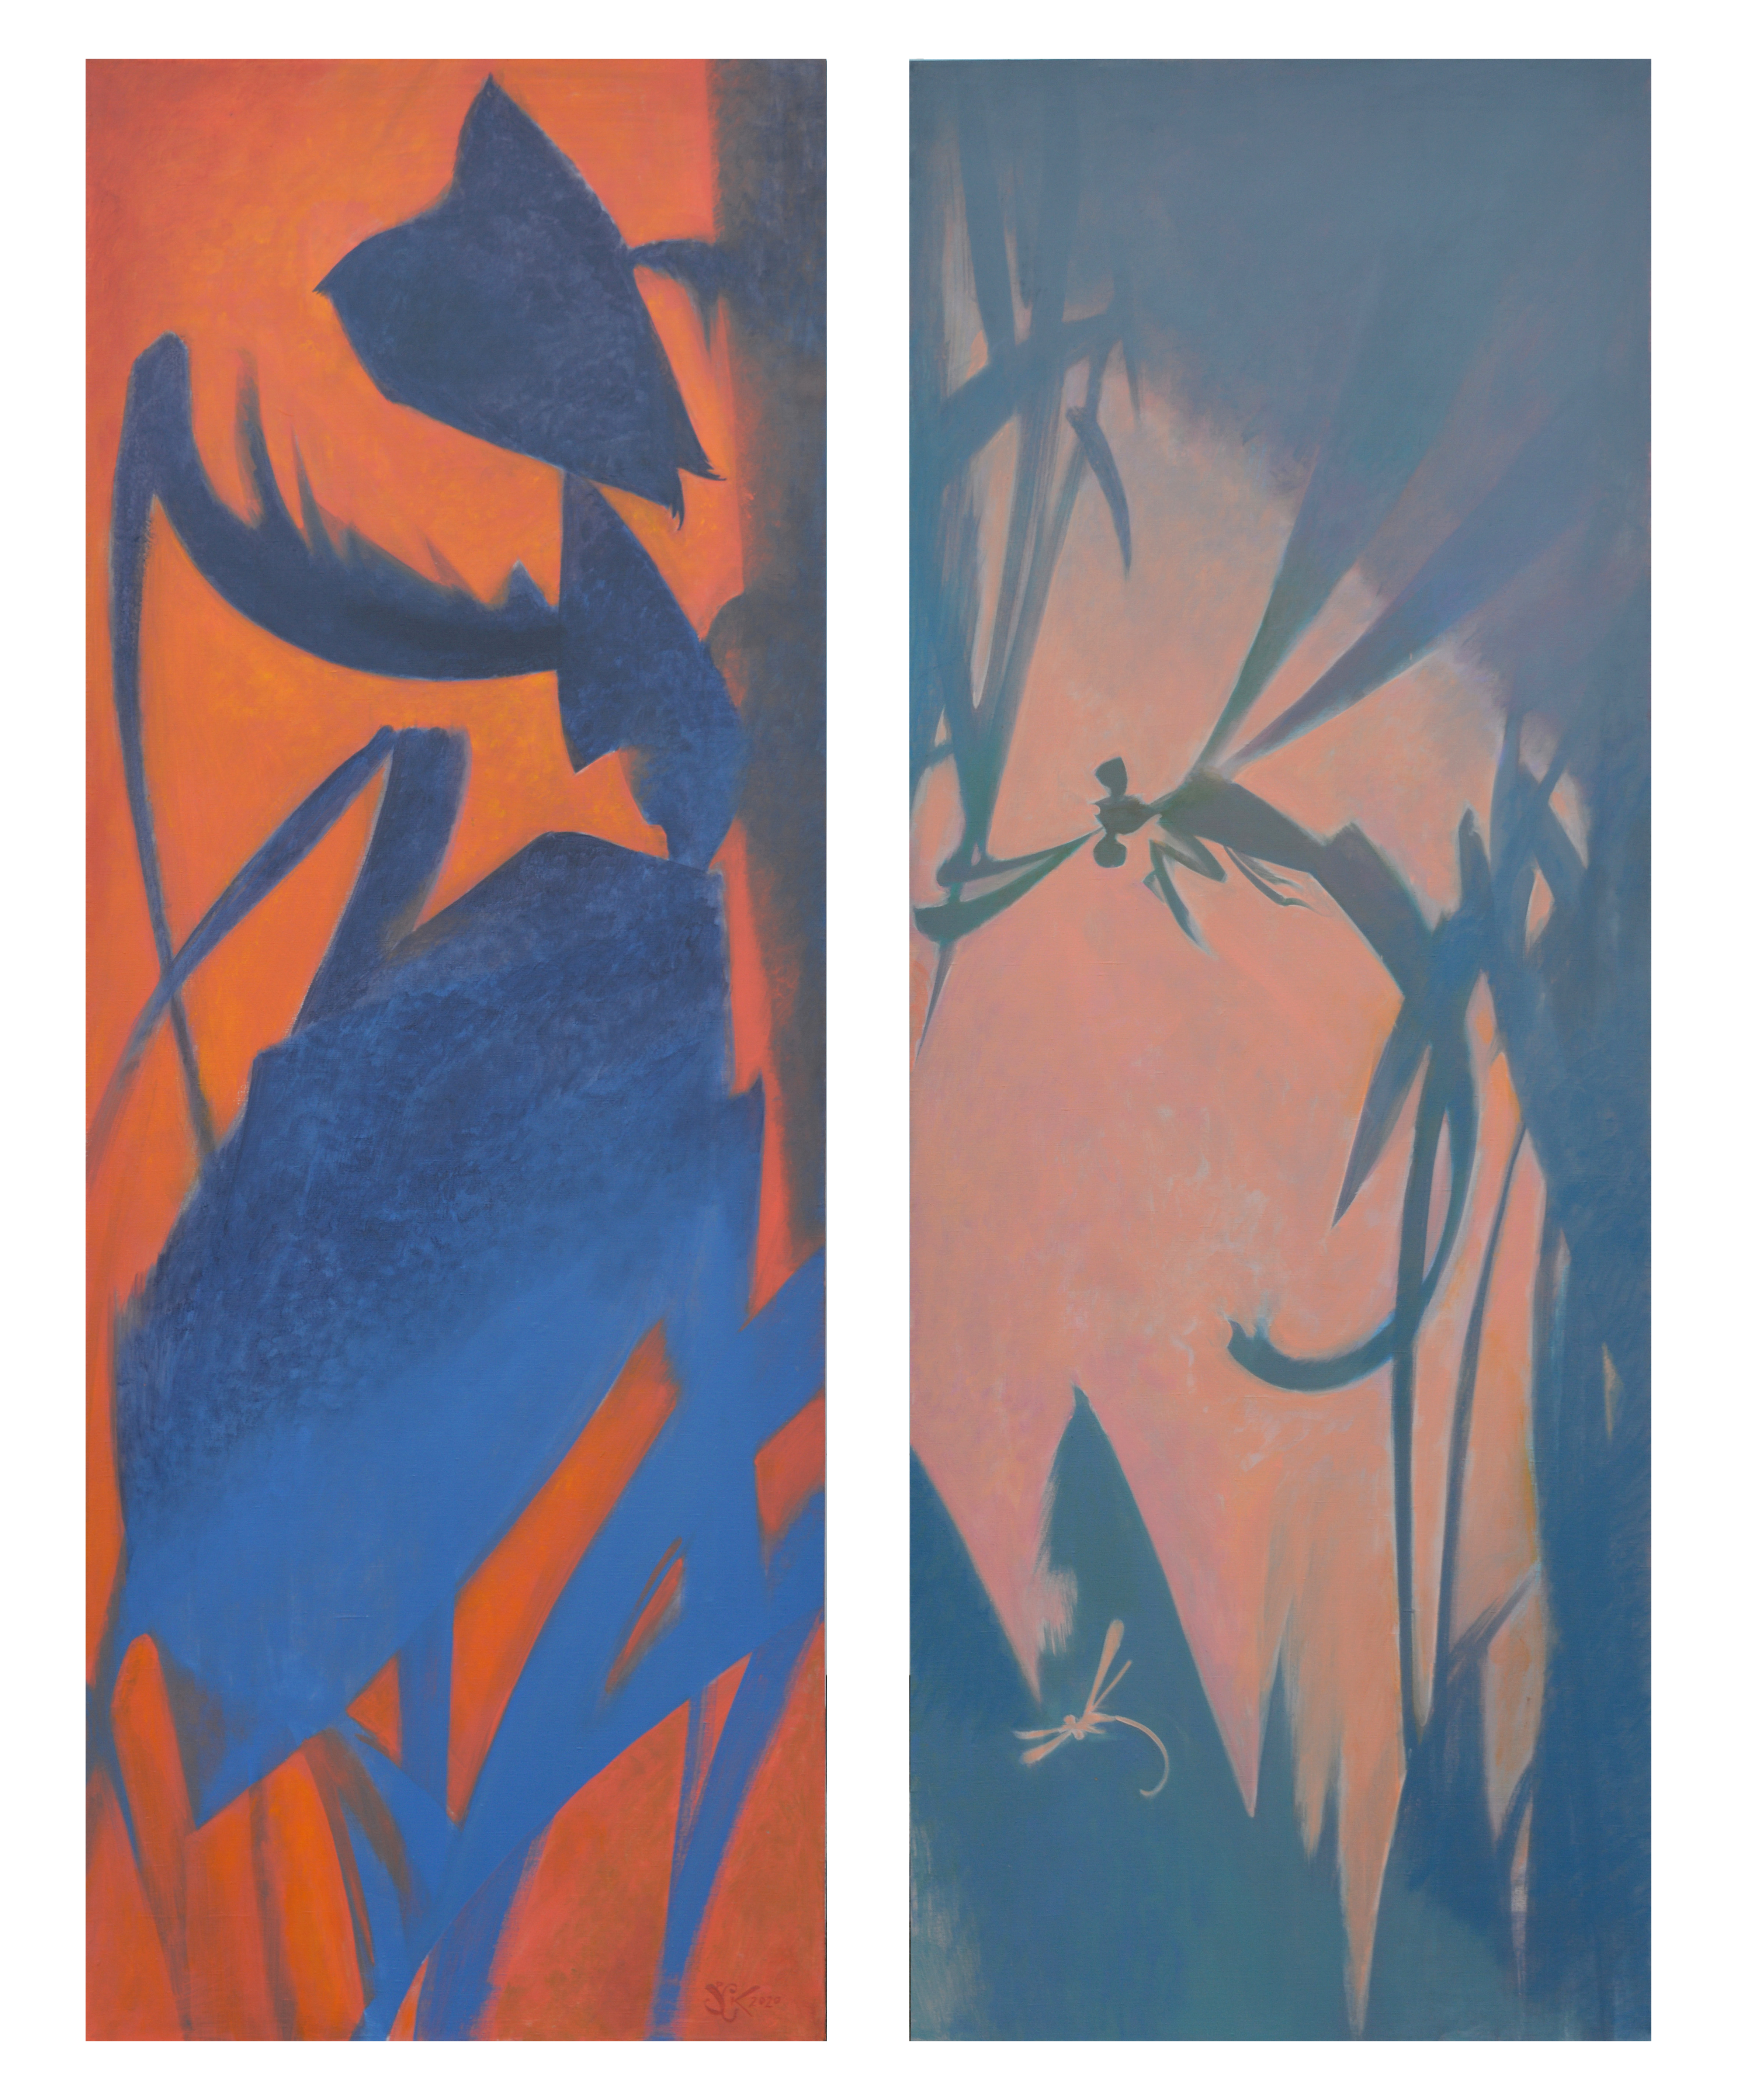 Dragonfly and Ant (diptych)